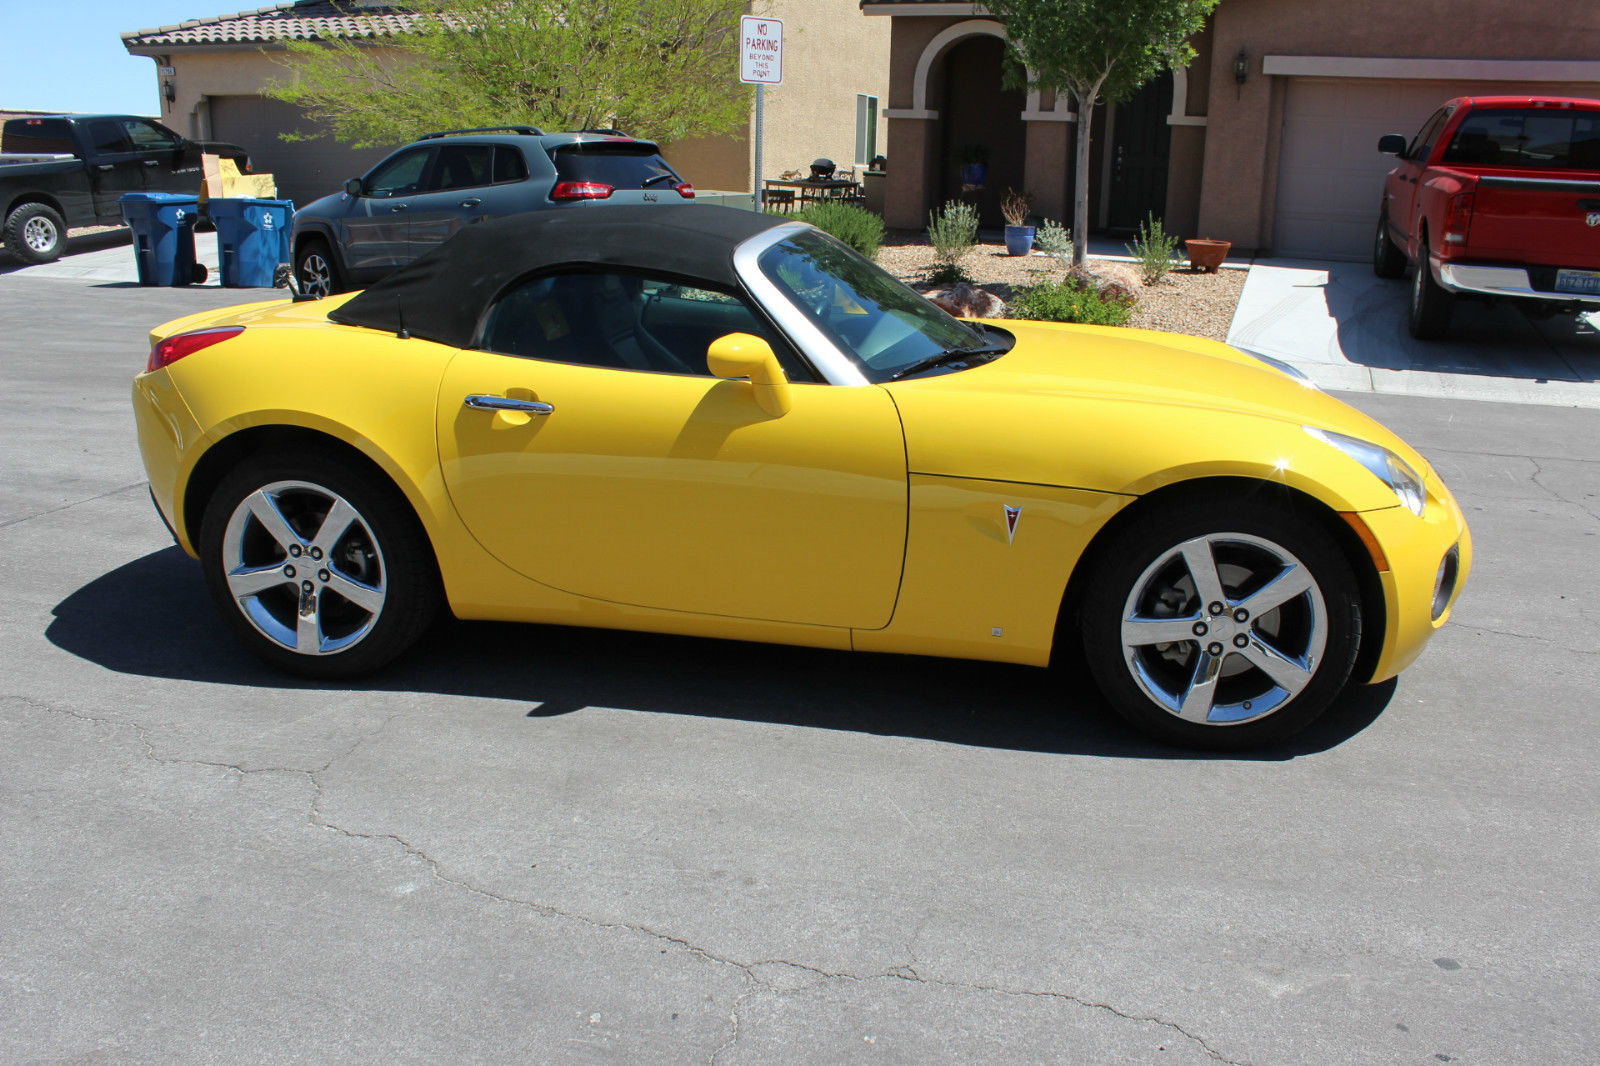 2008 Pontiac Solstice Gxp Turbo For Sale